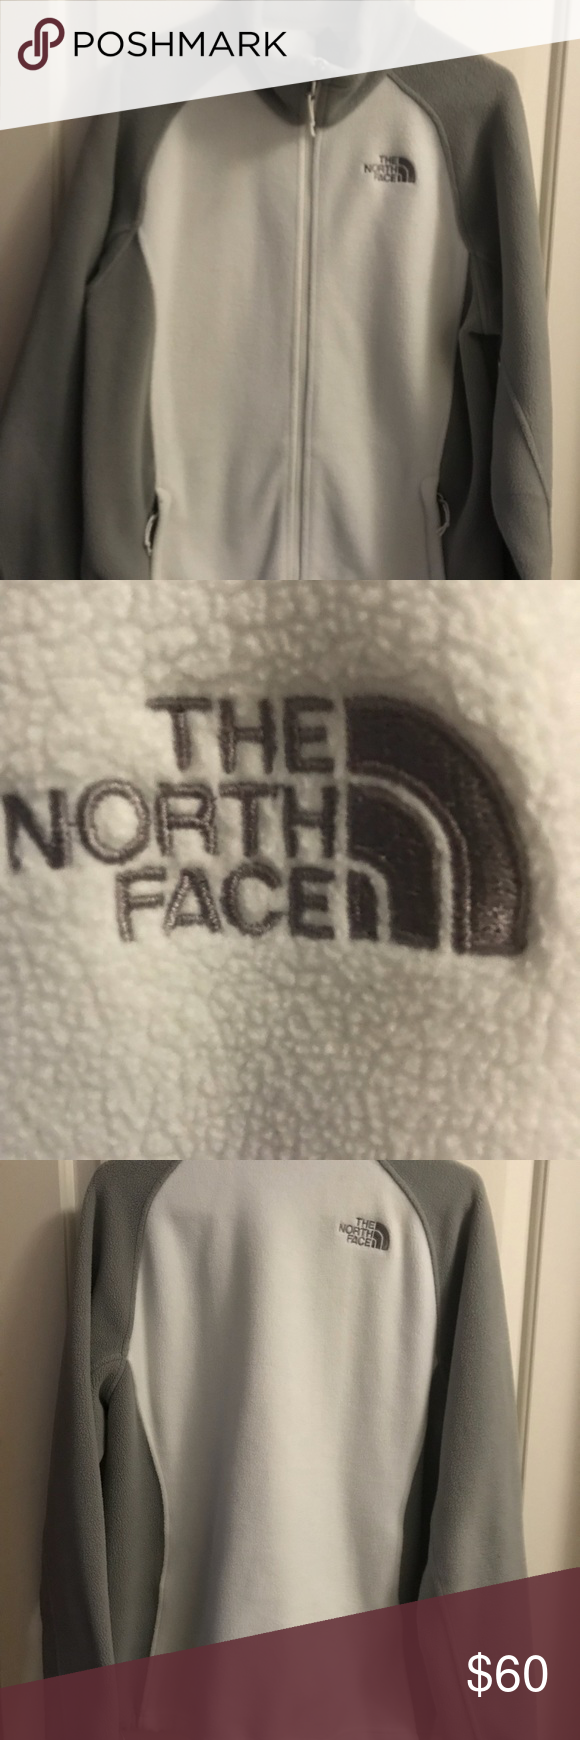 Northface womenus fleece lg white north face jacket face and gray